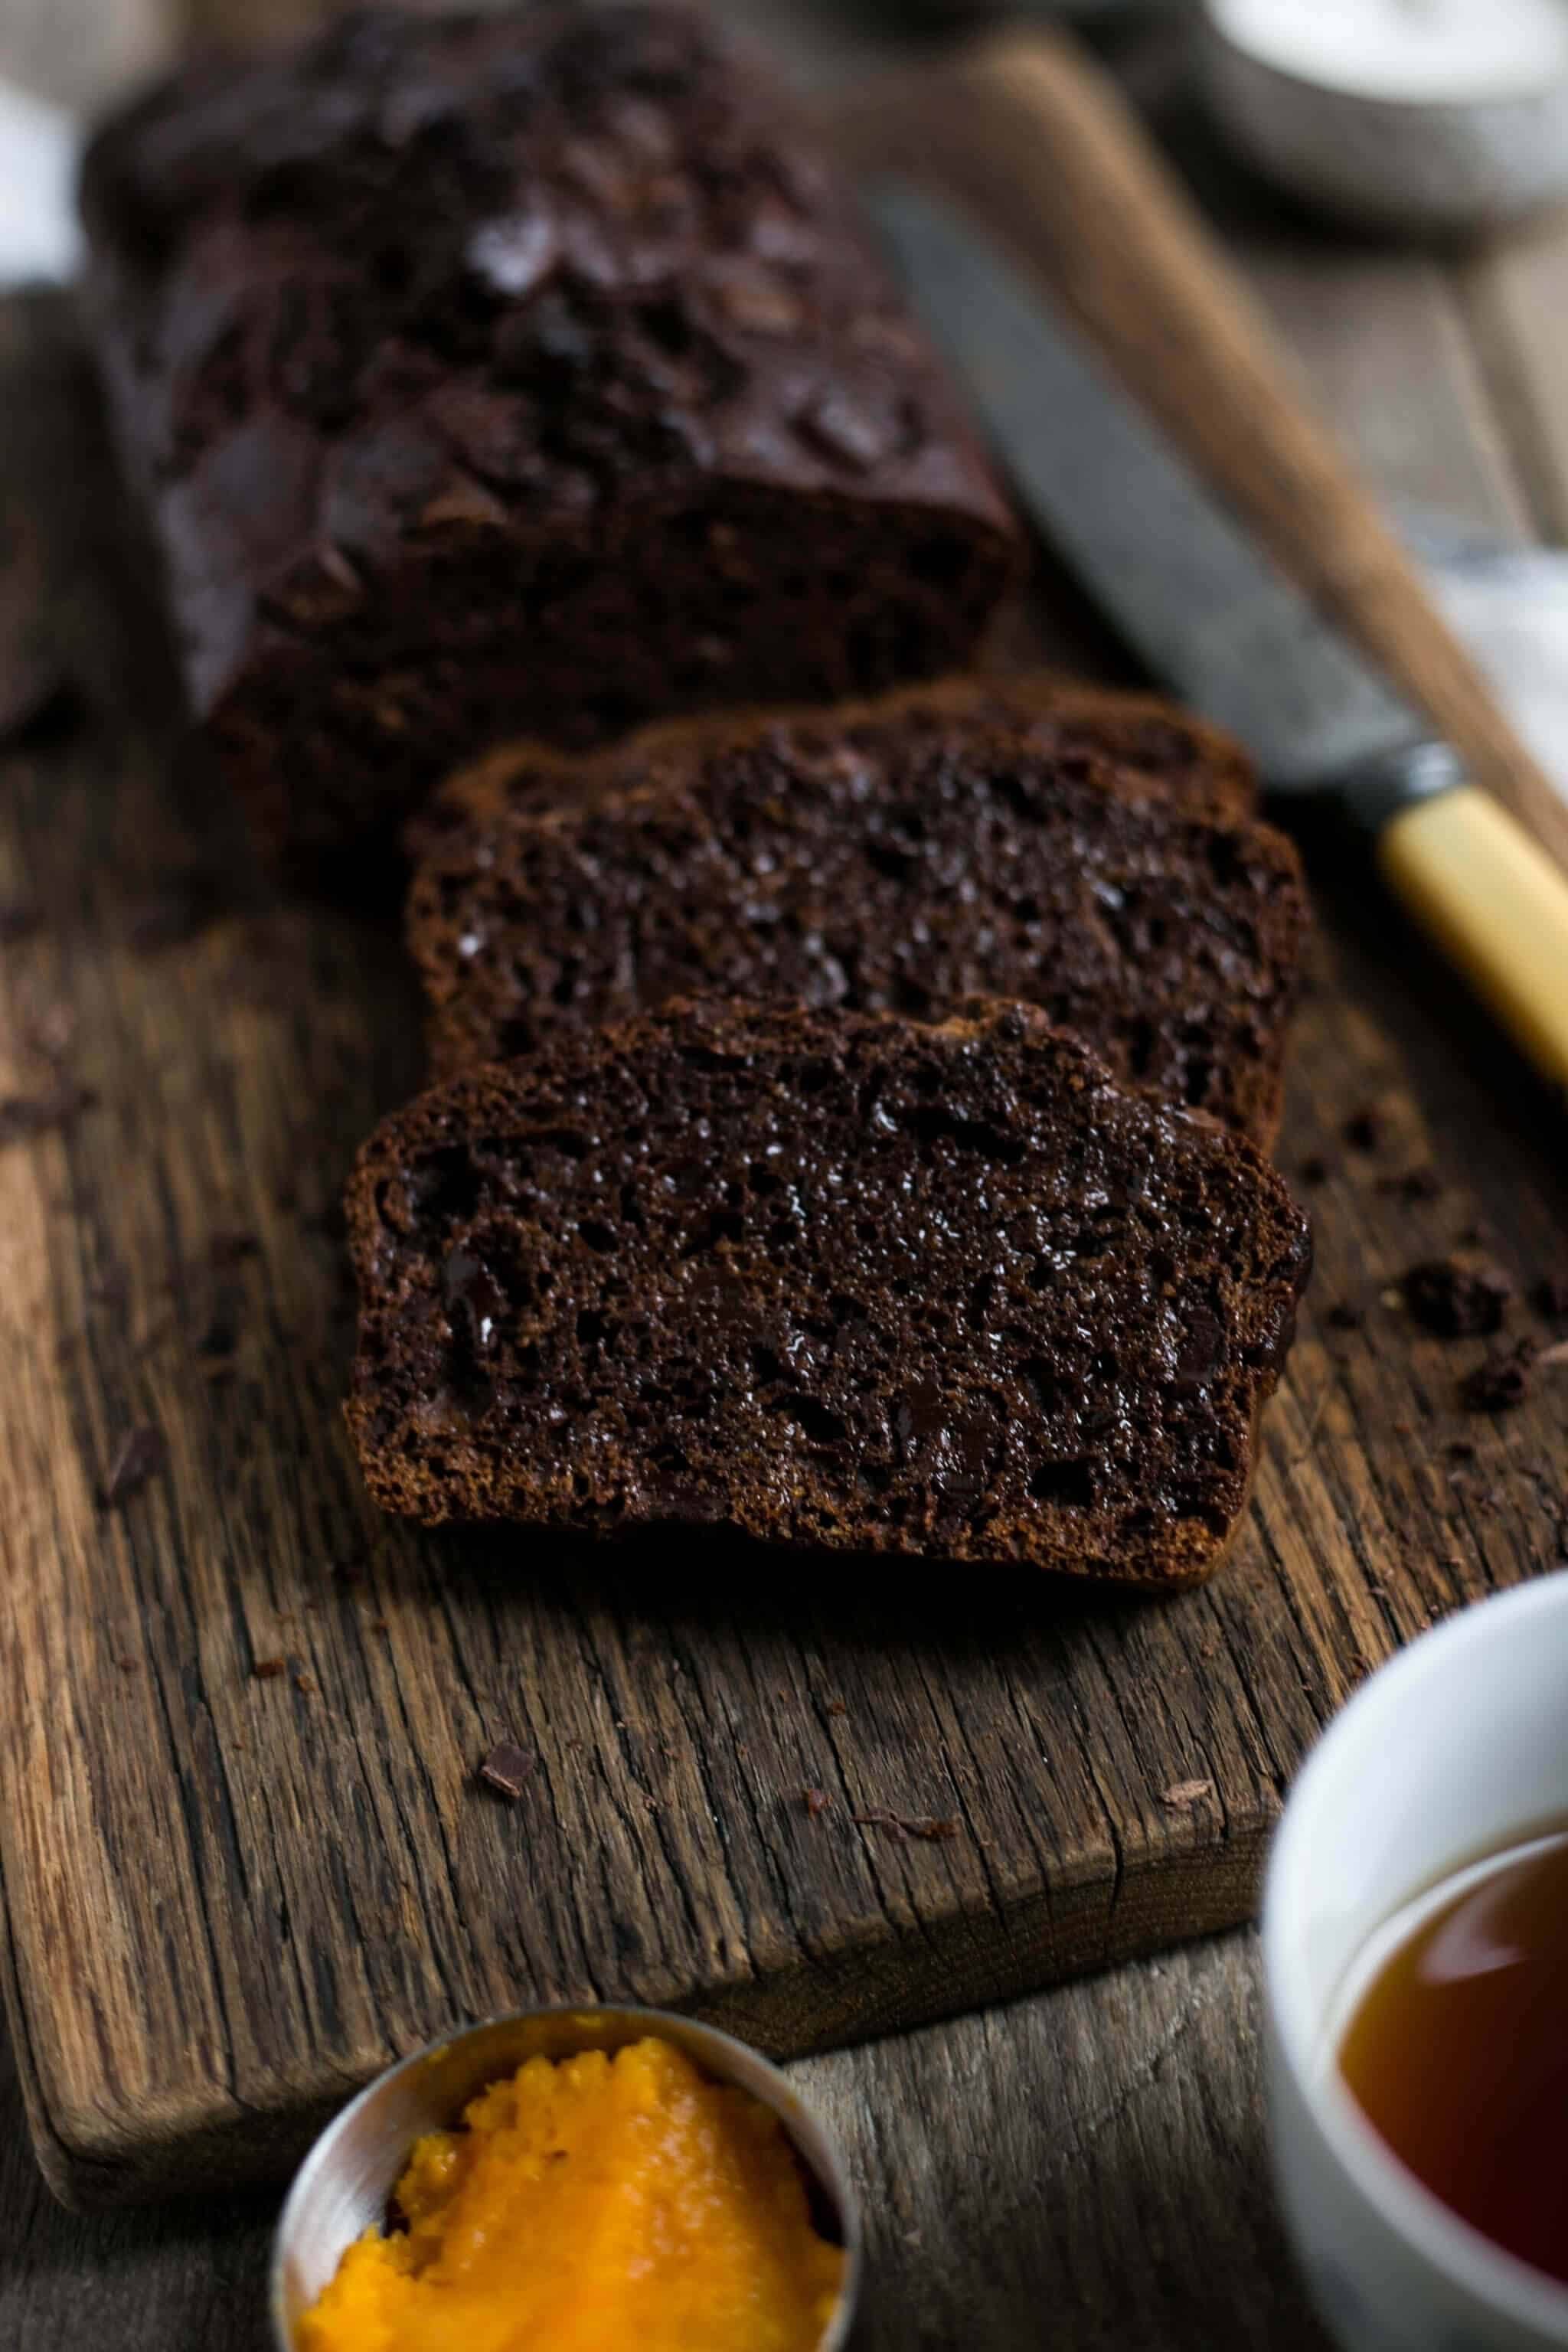 Spiced pumpkin and chocolate bread. Delicious and easy recipe for perfect seasonal bake! #vegan #pumpkin bread | via @annabanana.co